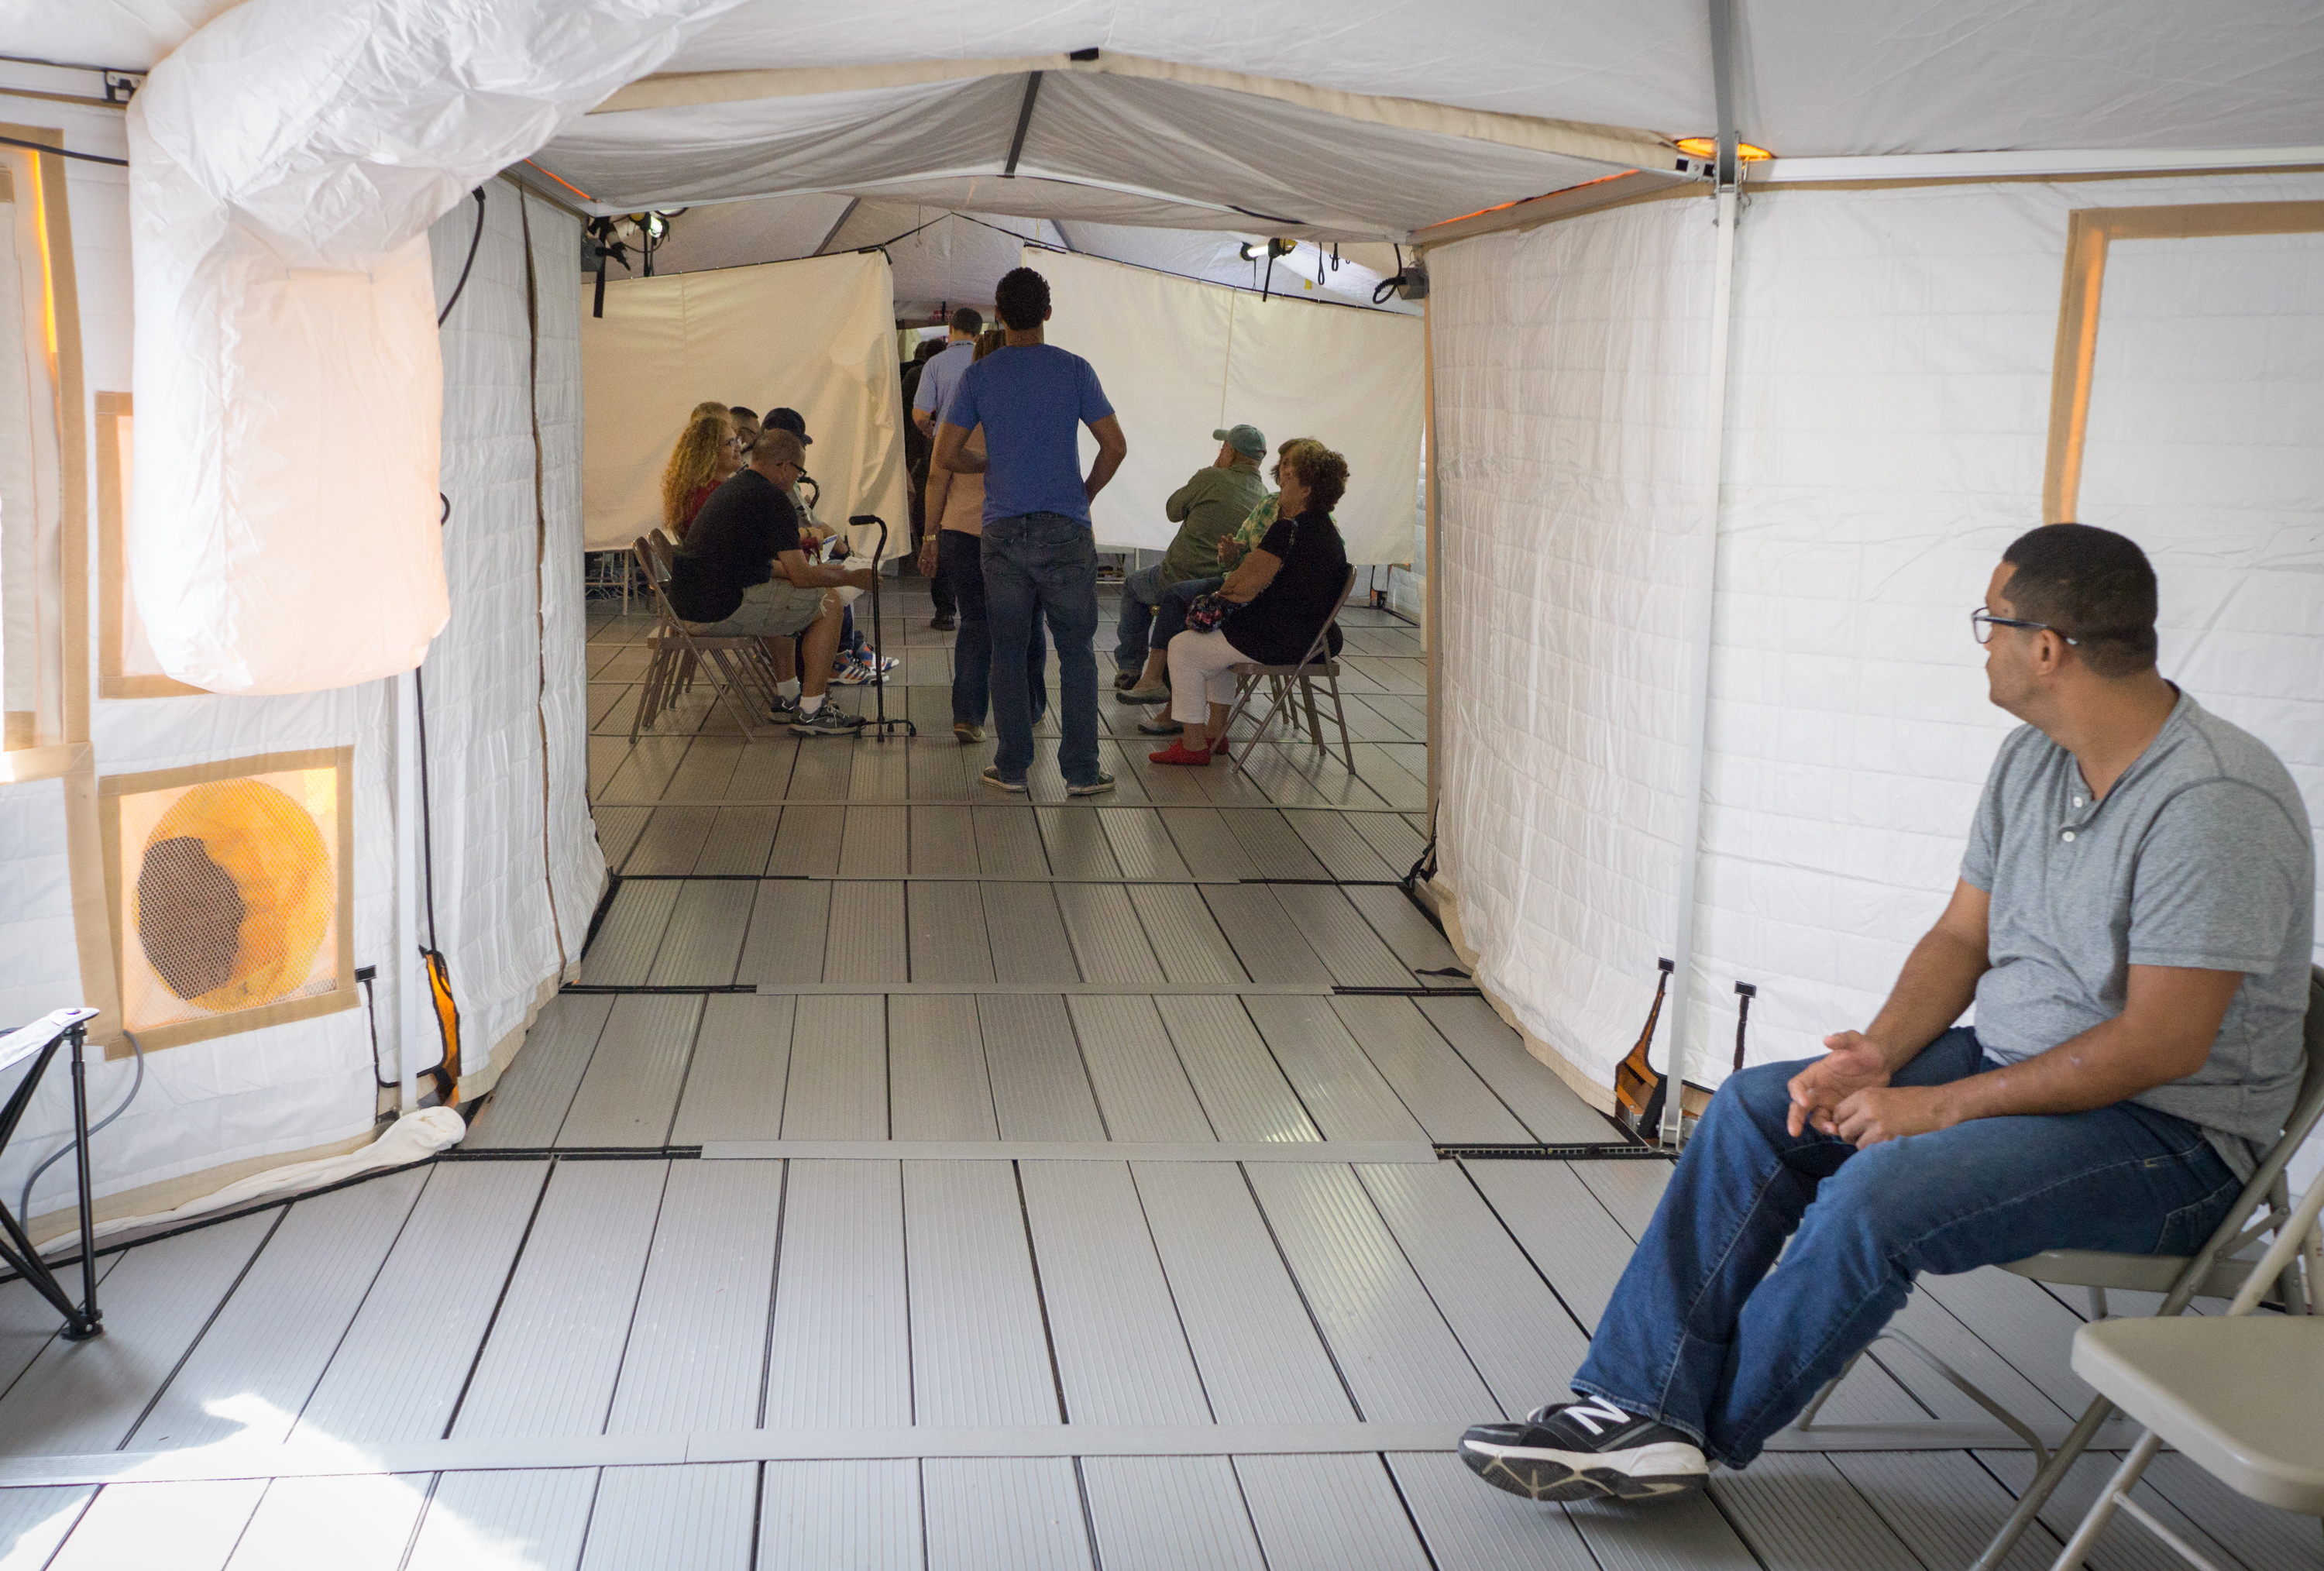 Caption: Patients wait for medical care at a temporary hospital tent outside the VA hospital in Ponce, Puerto Rico. The main building is unusable after Hurricane Maria., Credit: Angel Valentin/American Homefront